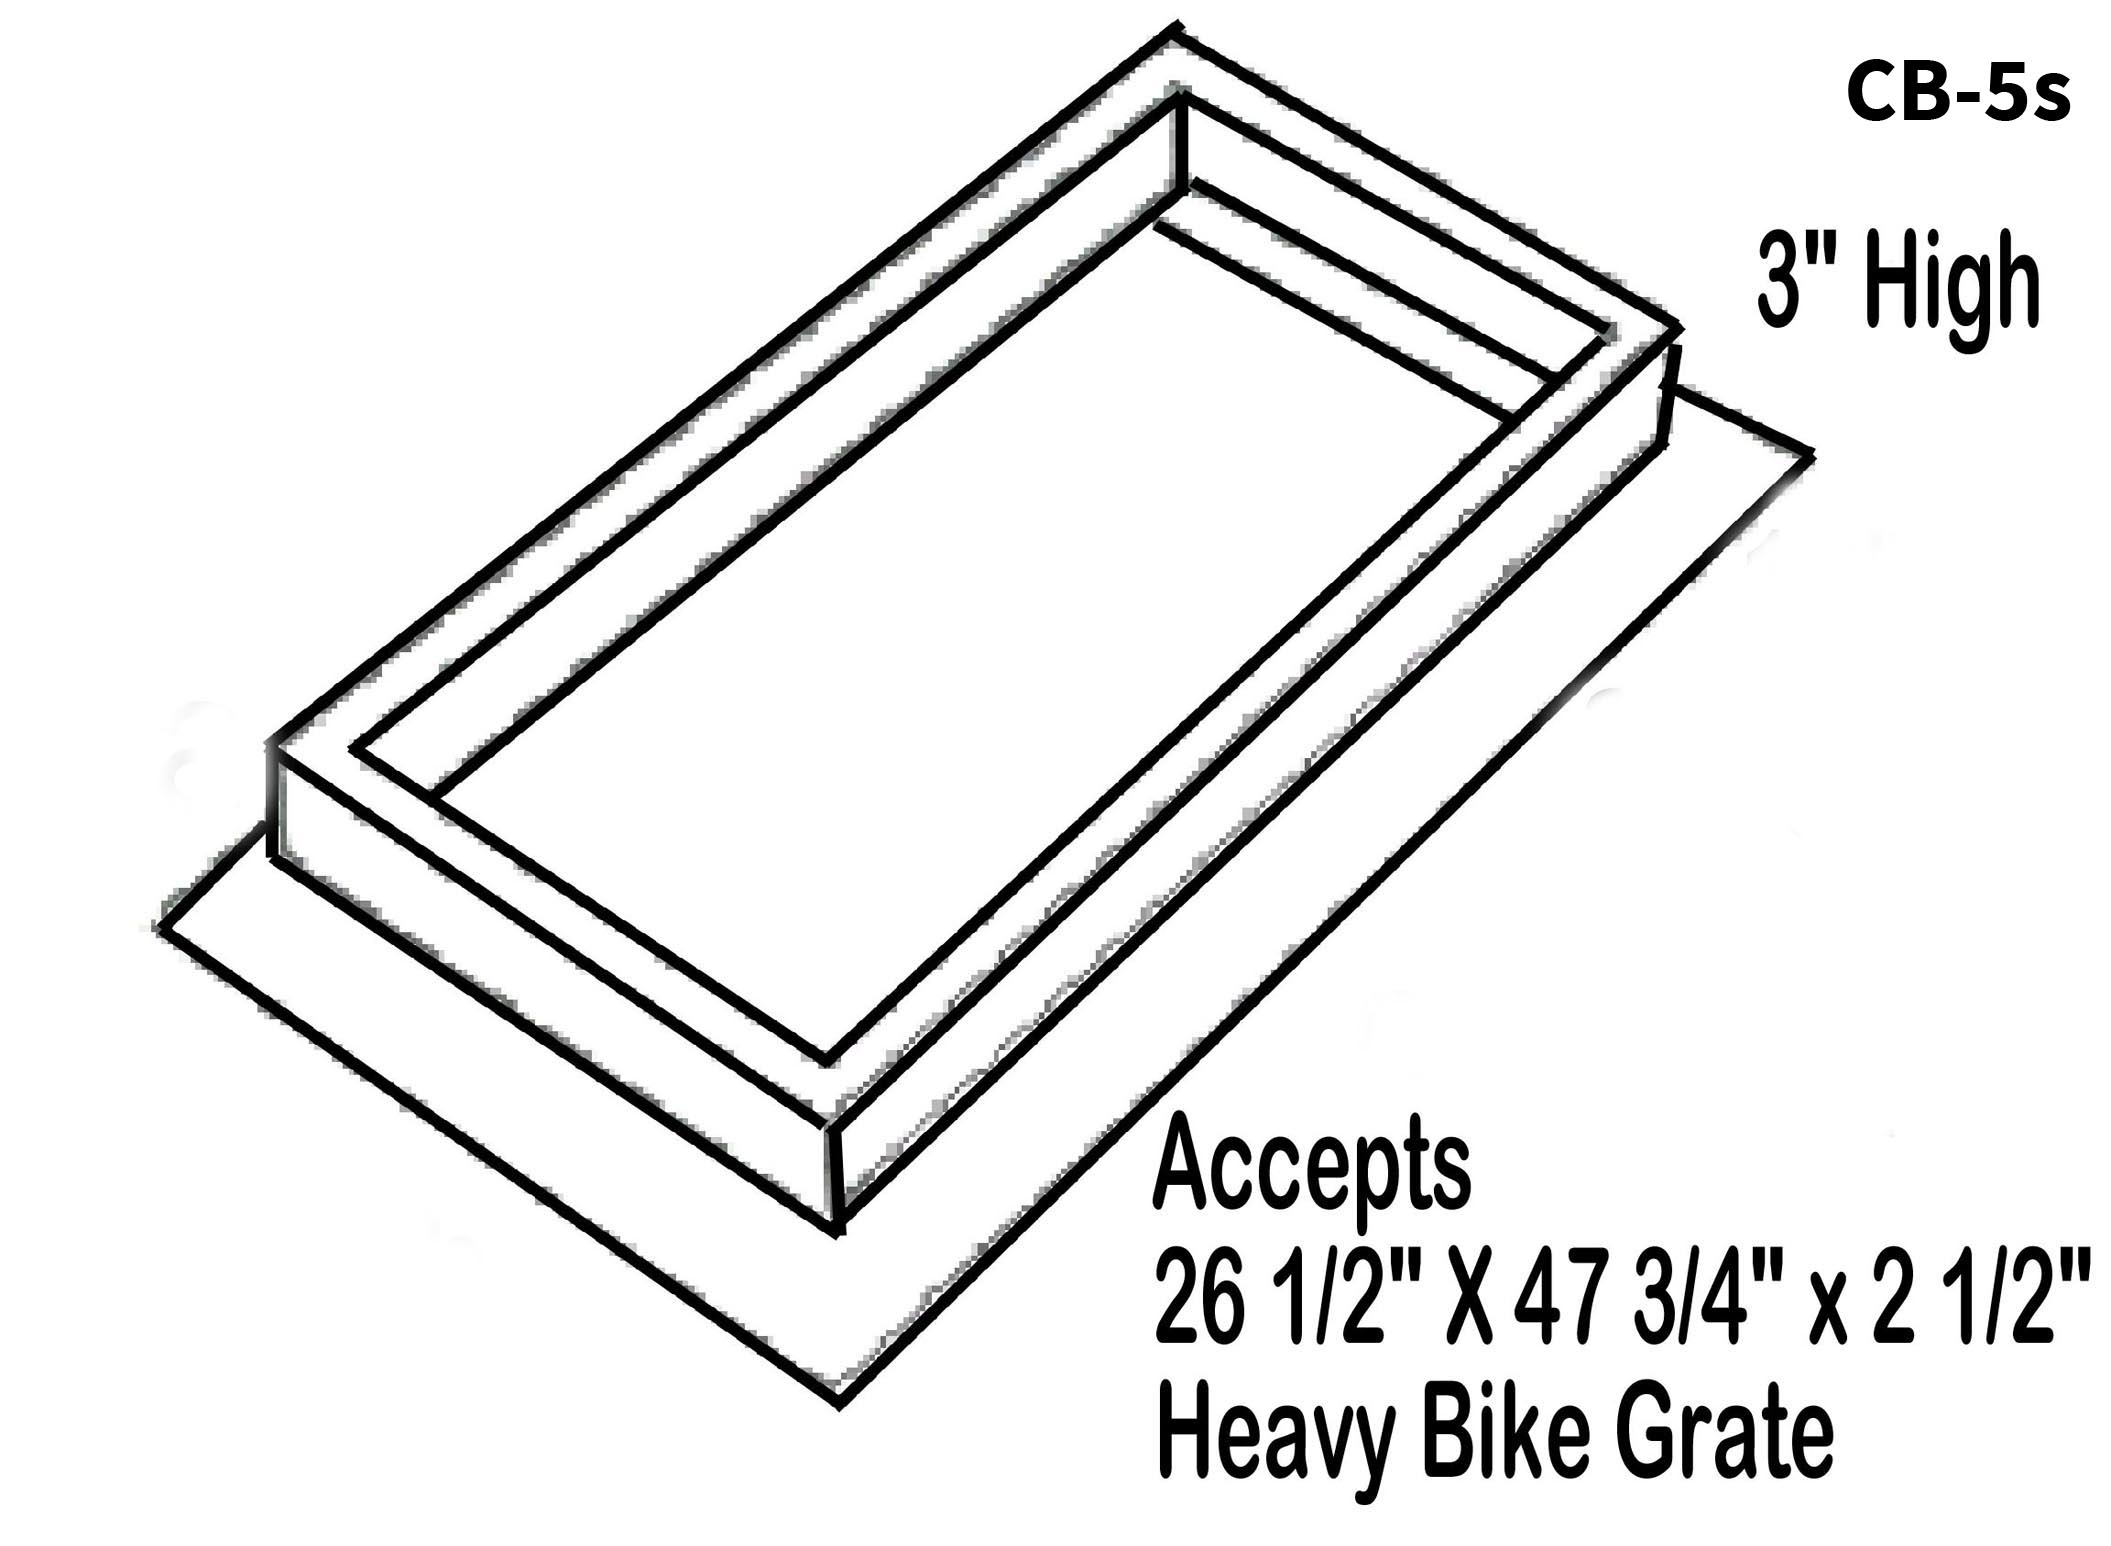 Heavy Bike Grate